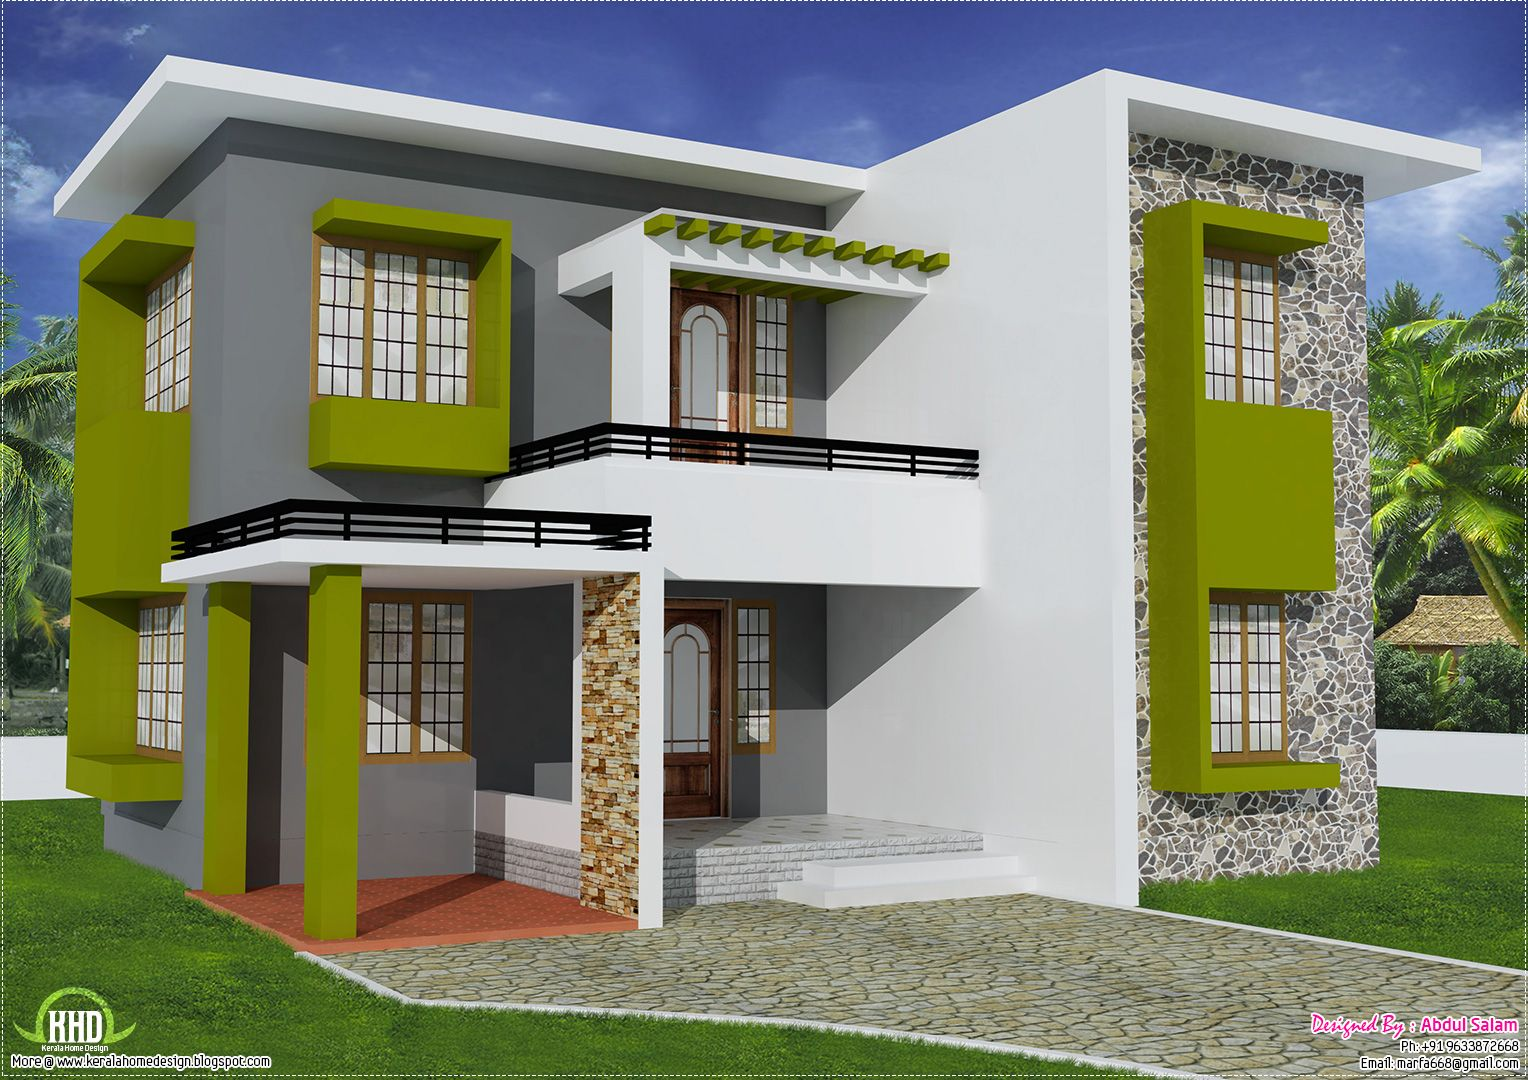 Sq feet flat roof home design house design plans roof Contemporary flat roof designs